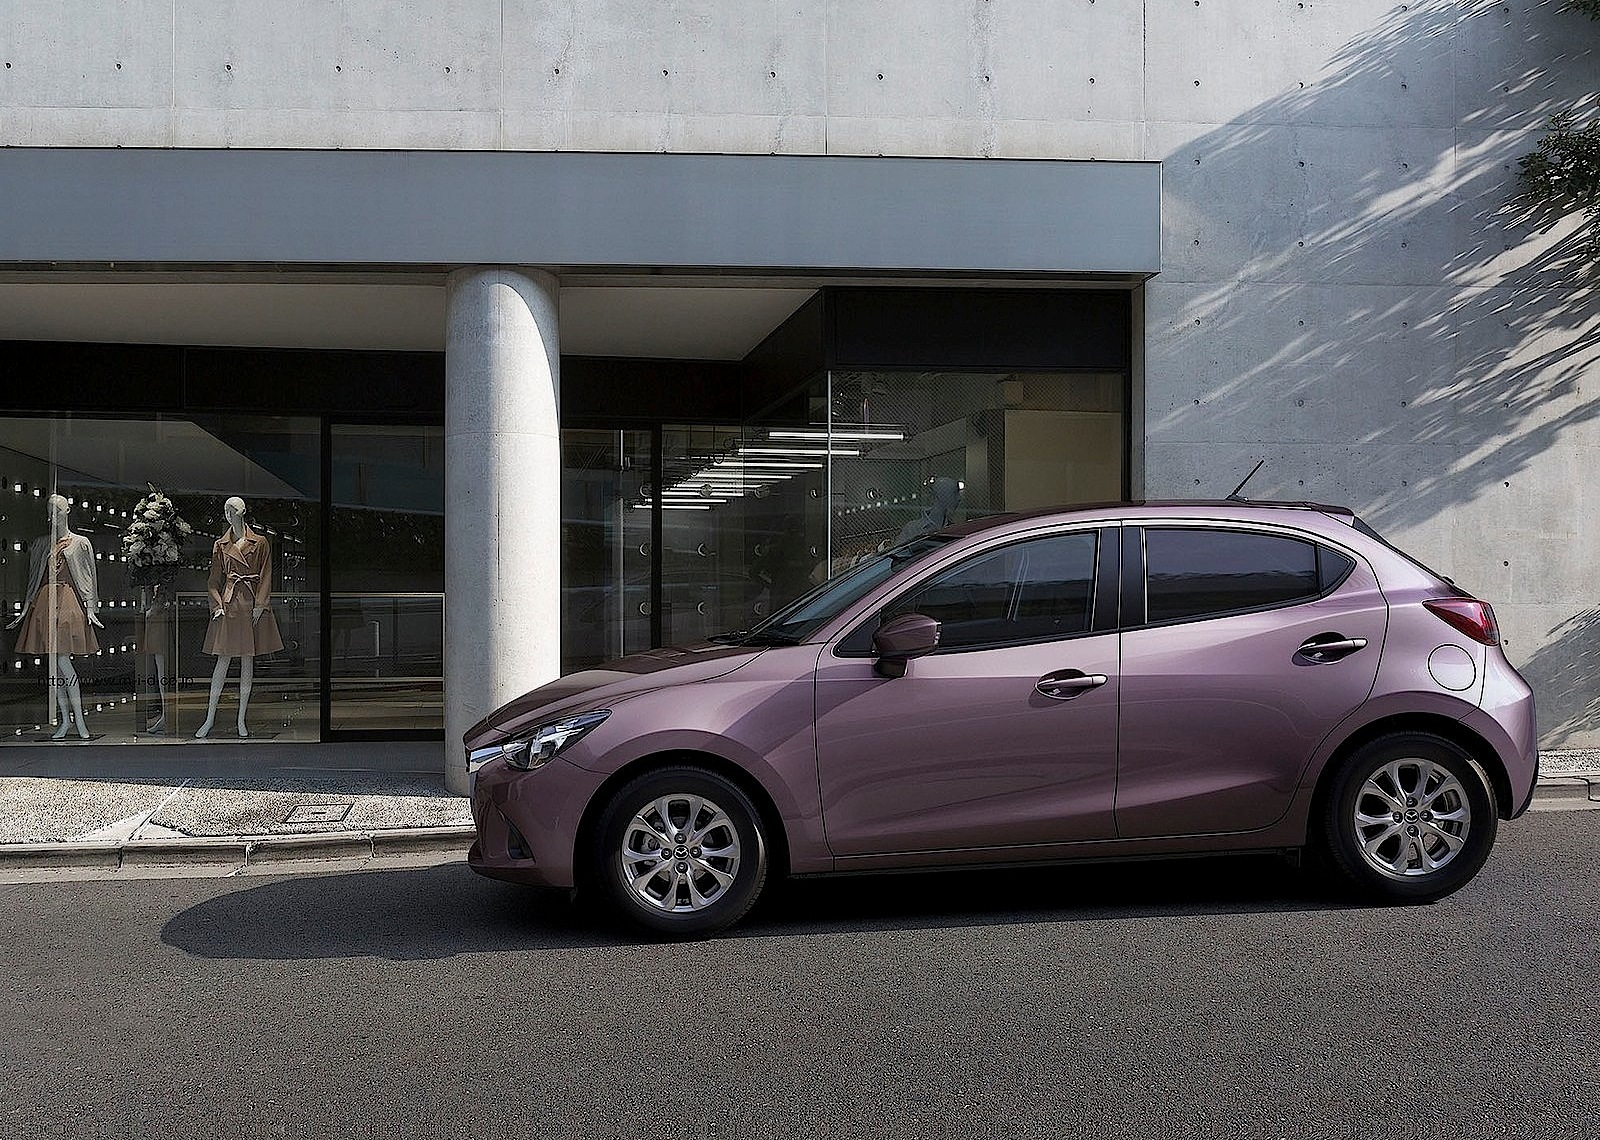 mazda reviews car neo test carsguide road review